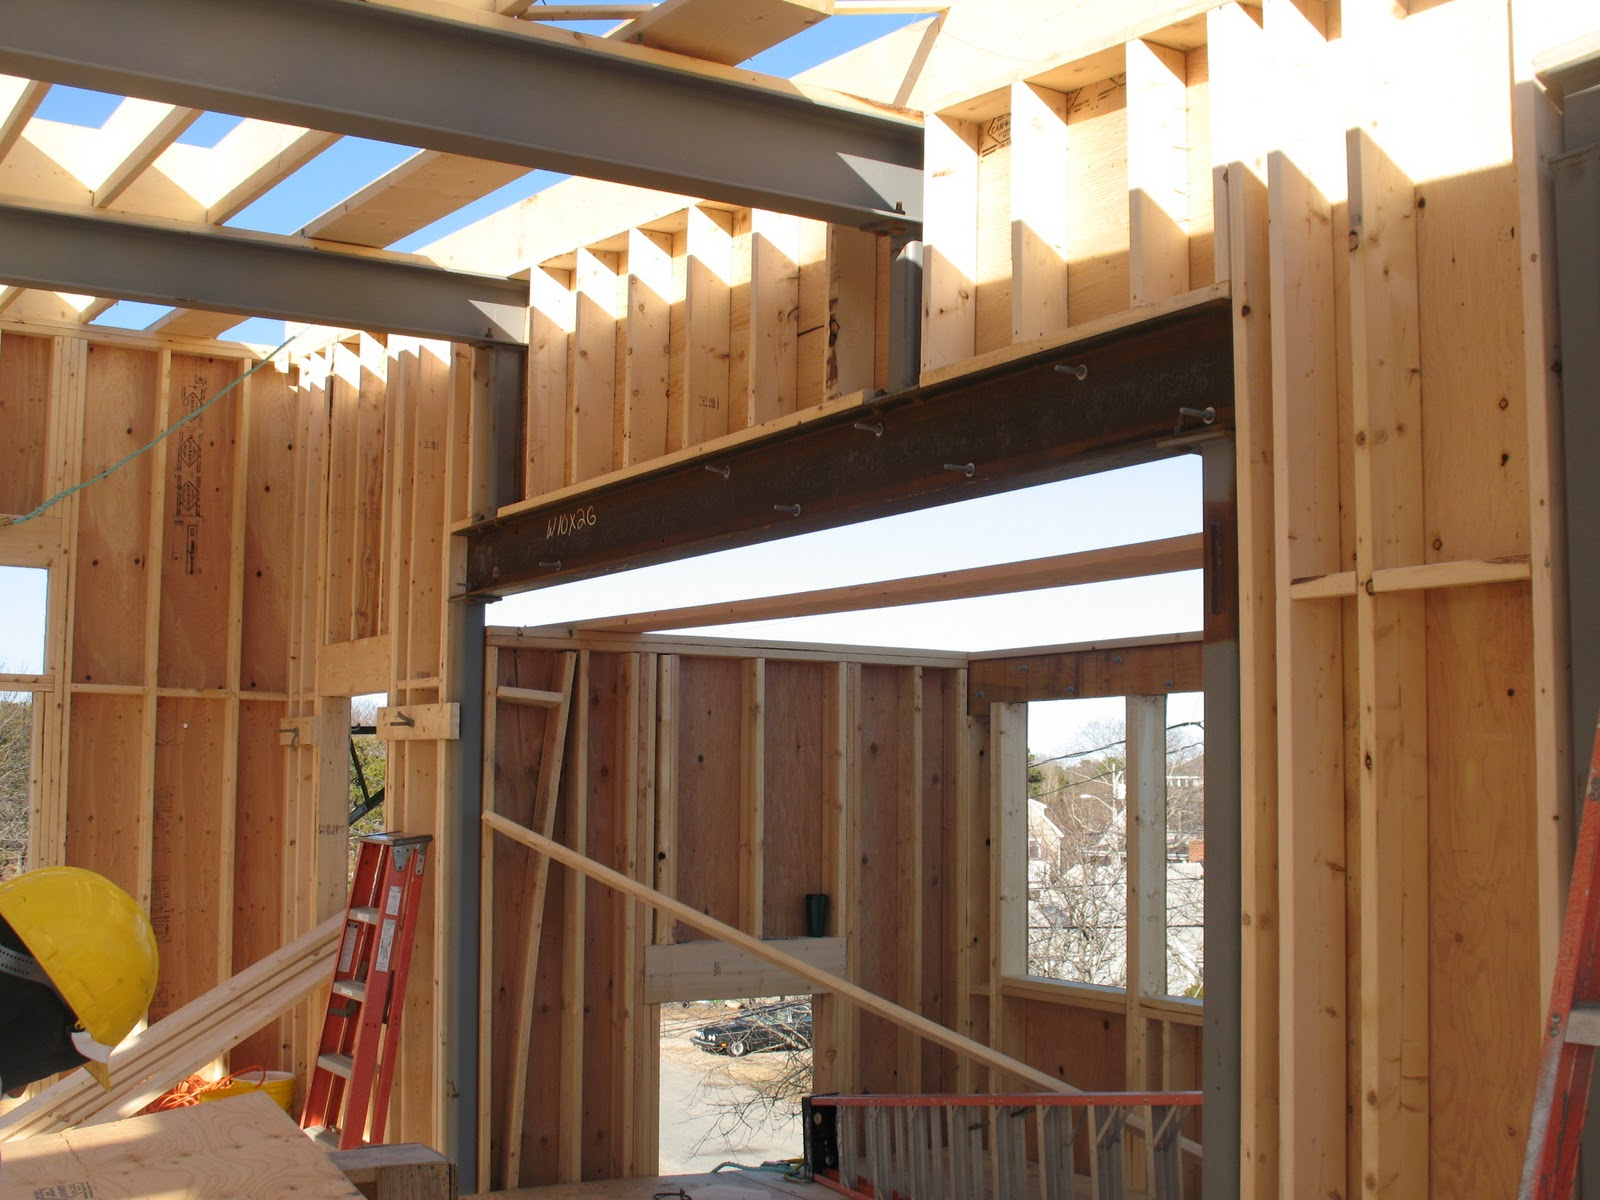 Net Zero Energy Cape Cod Roof Framing Continues